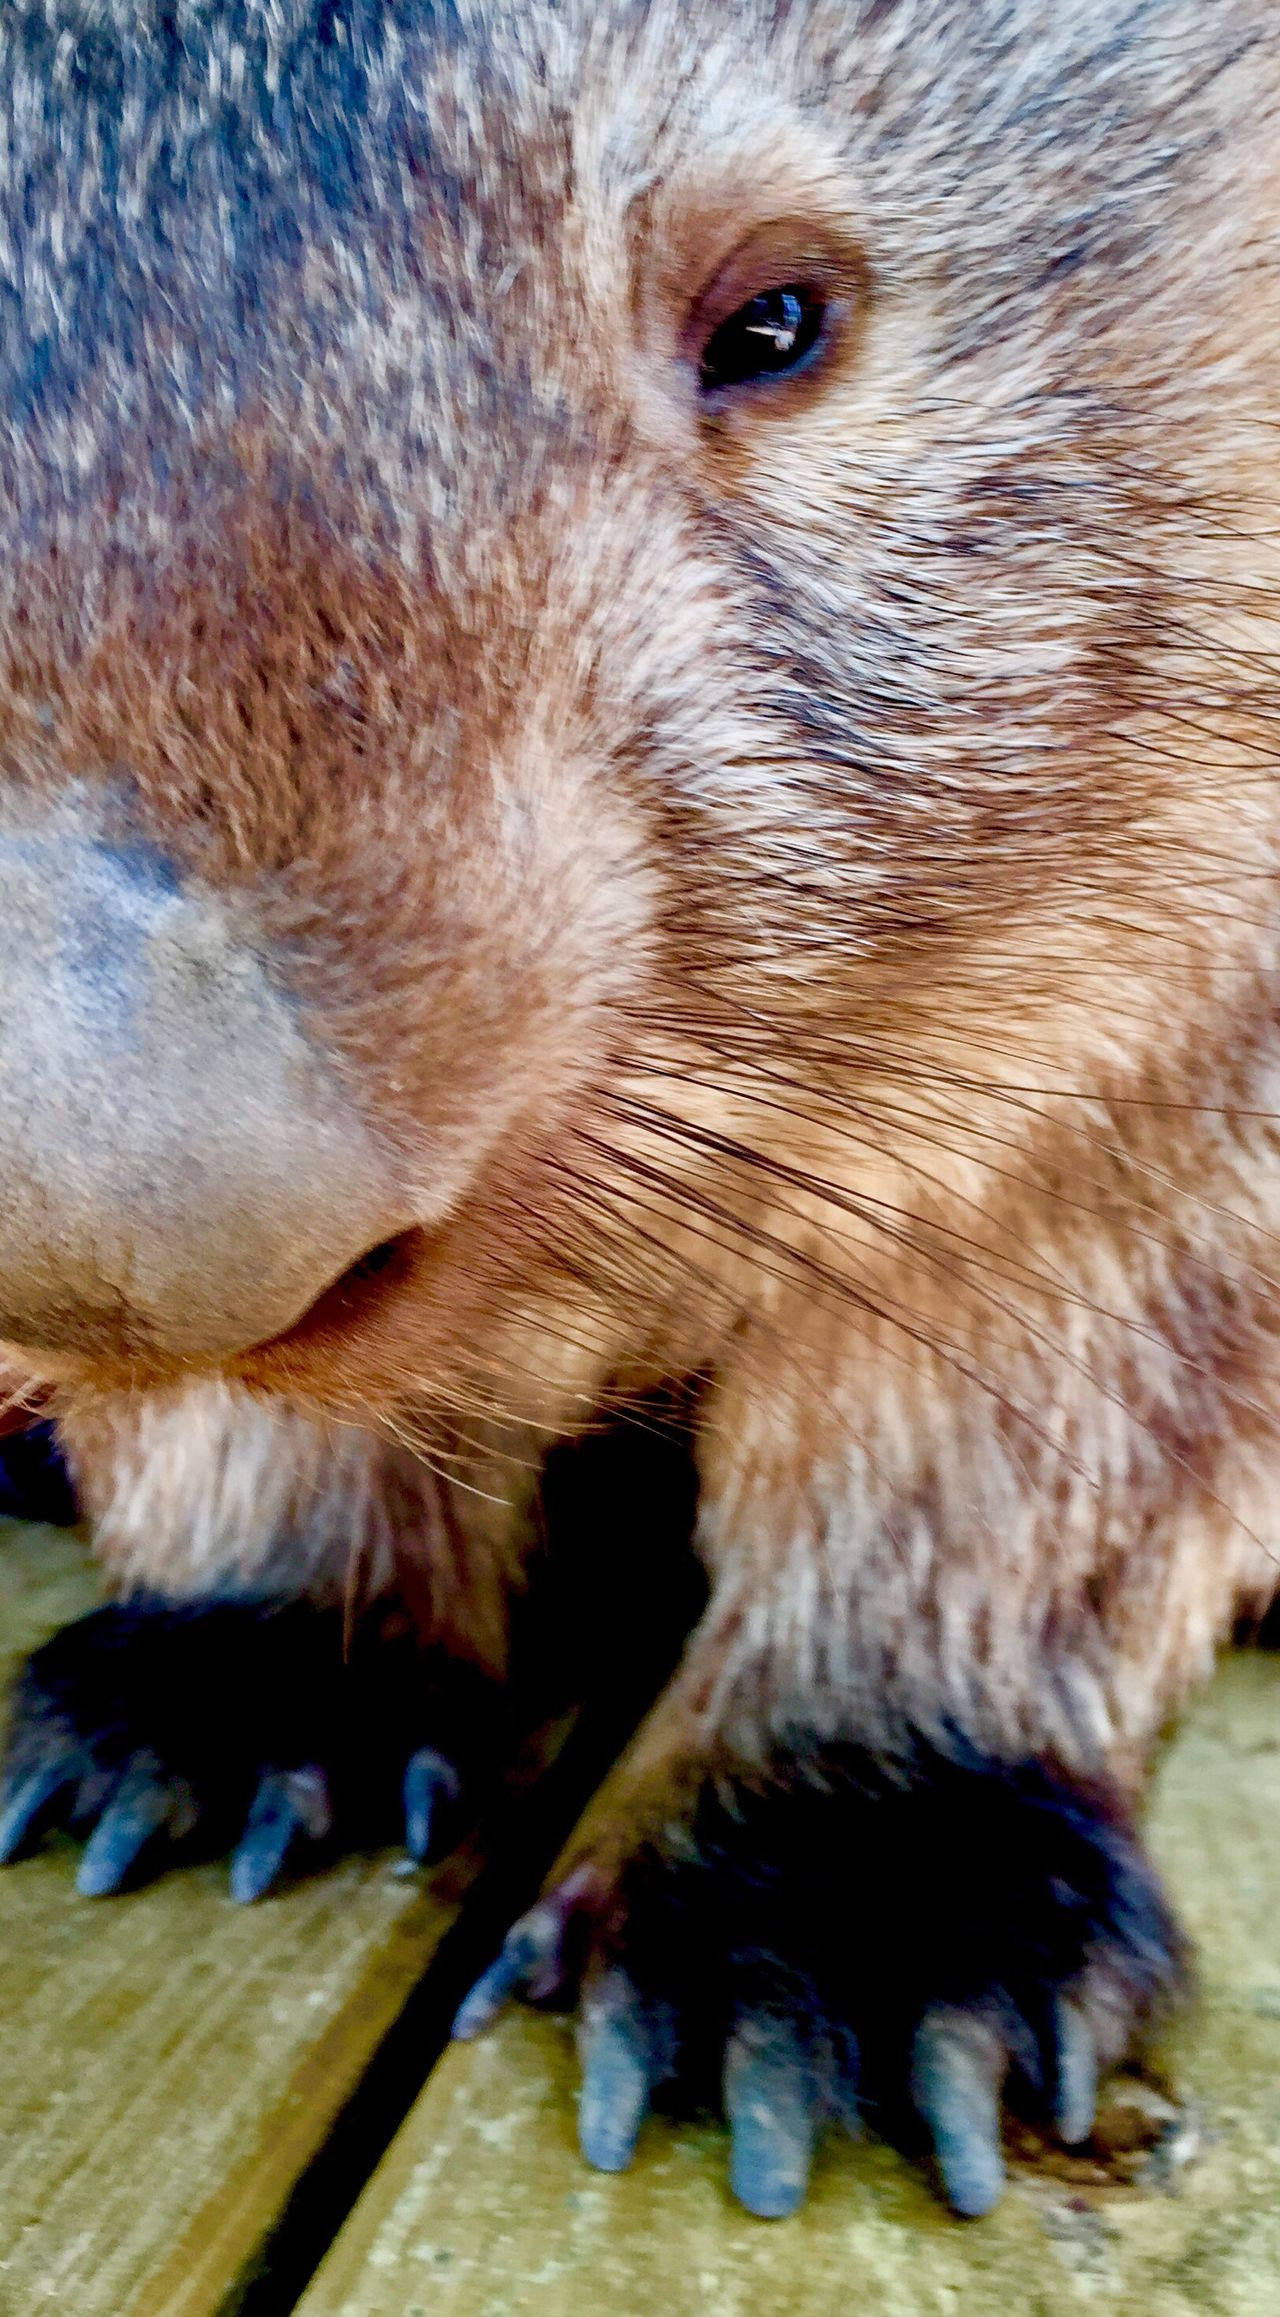 EyeEmNewHere One Animal Animal Themes Close-up No People Snout Day Wombat  Marsupial Wildlife Wildlife & Nature Australia Australian Wildlife Australian Furry Claws